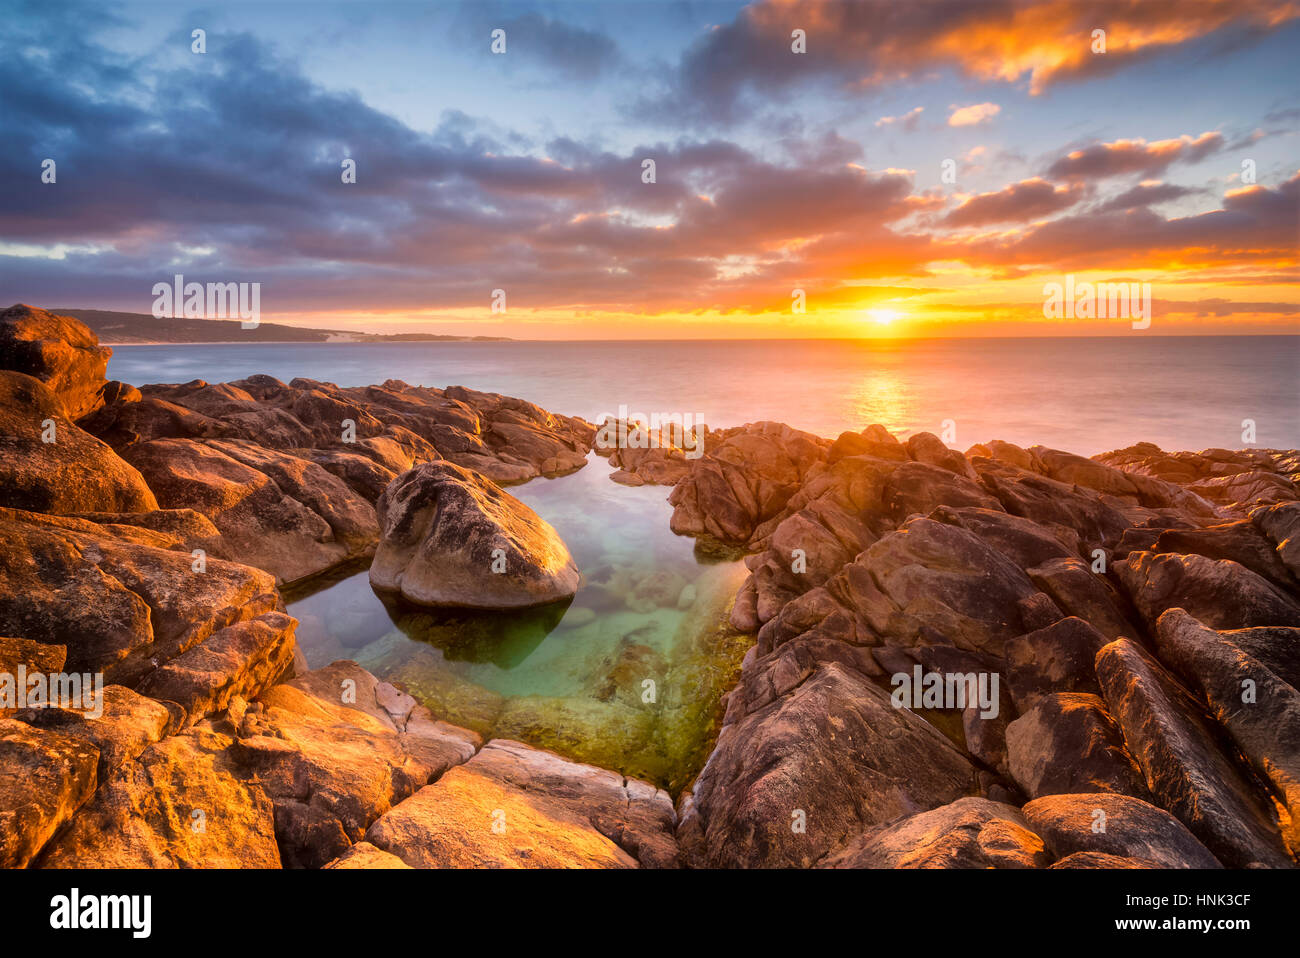 Golden Coastal Sunset In Wyadup, Western Australia - Stock Image